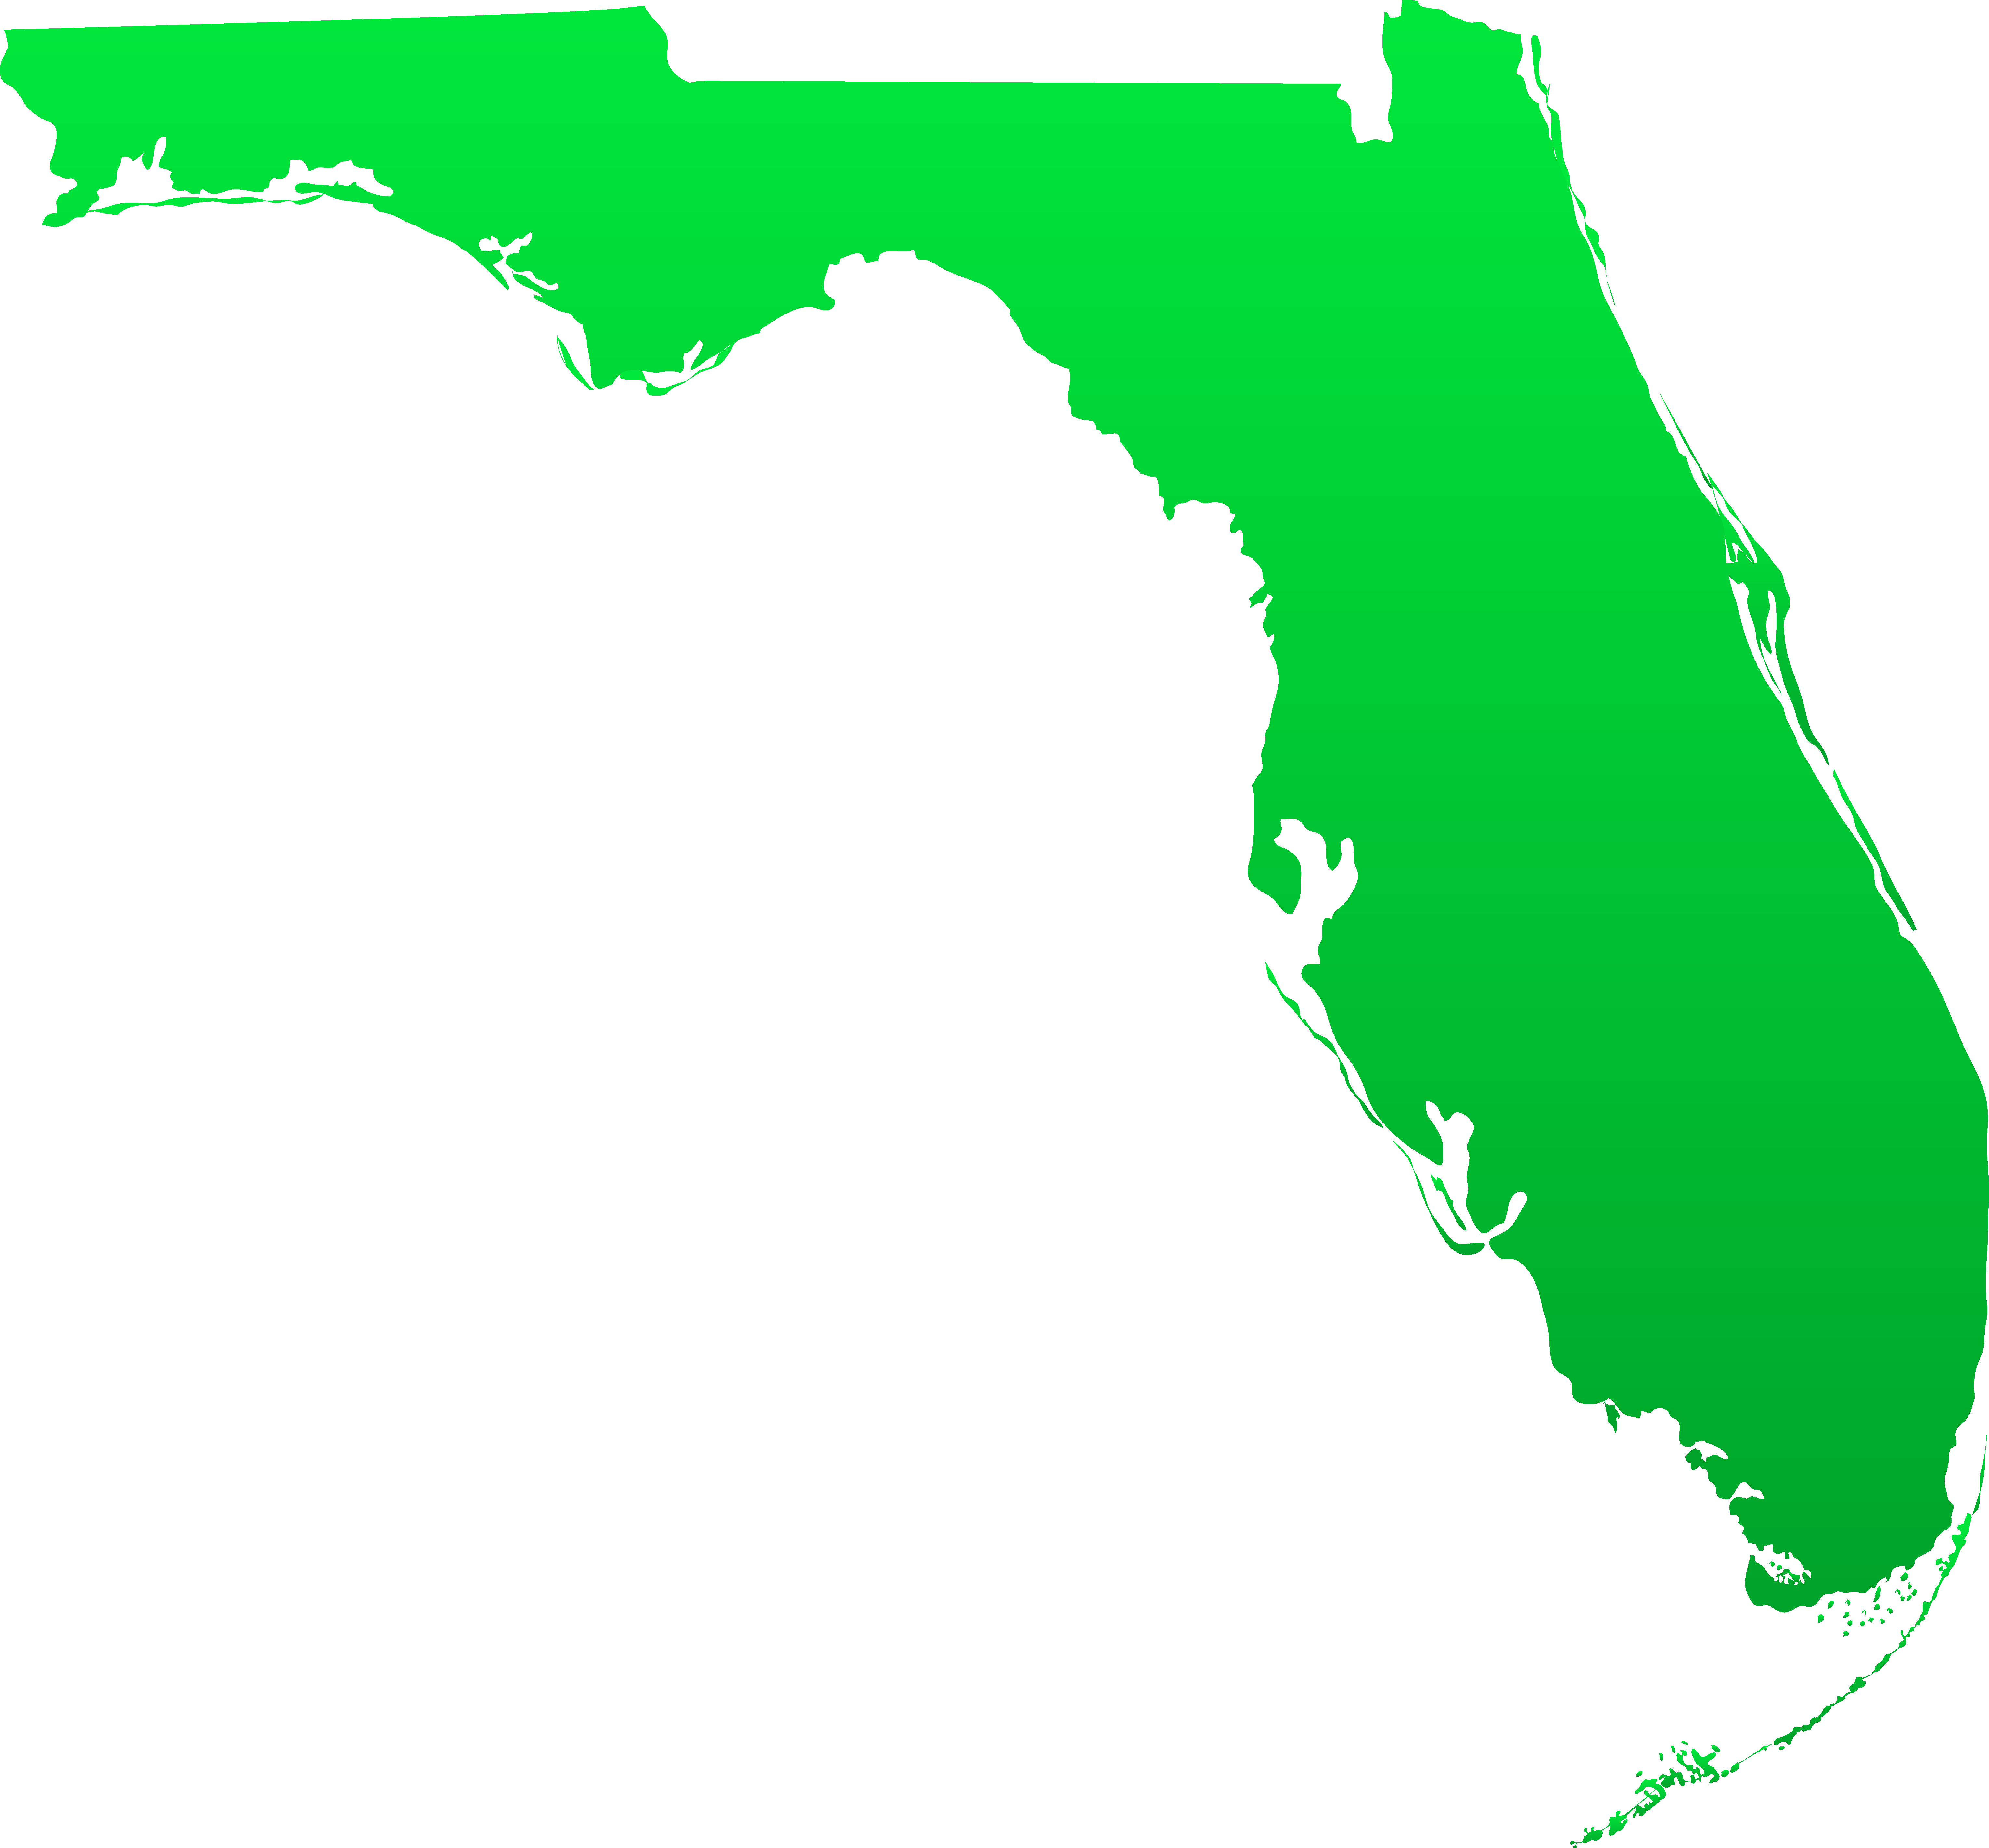 Florida state map clipart picture library Florida state clipart - ClipartFest picture library